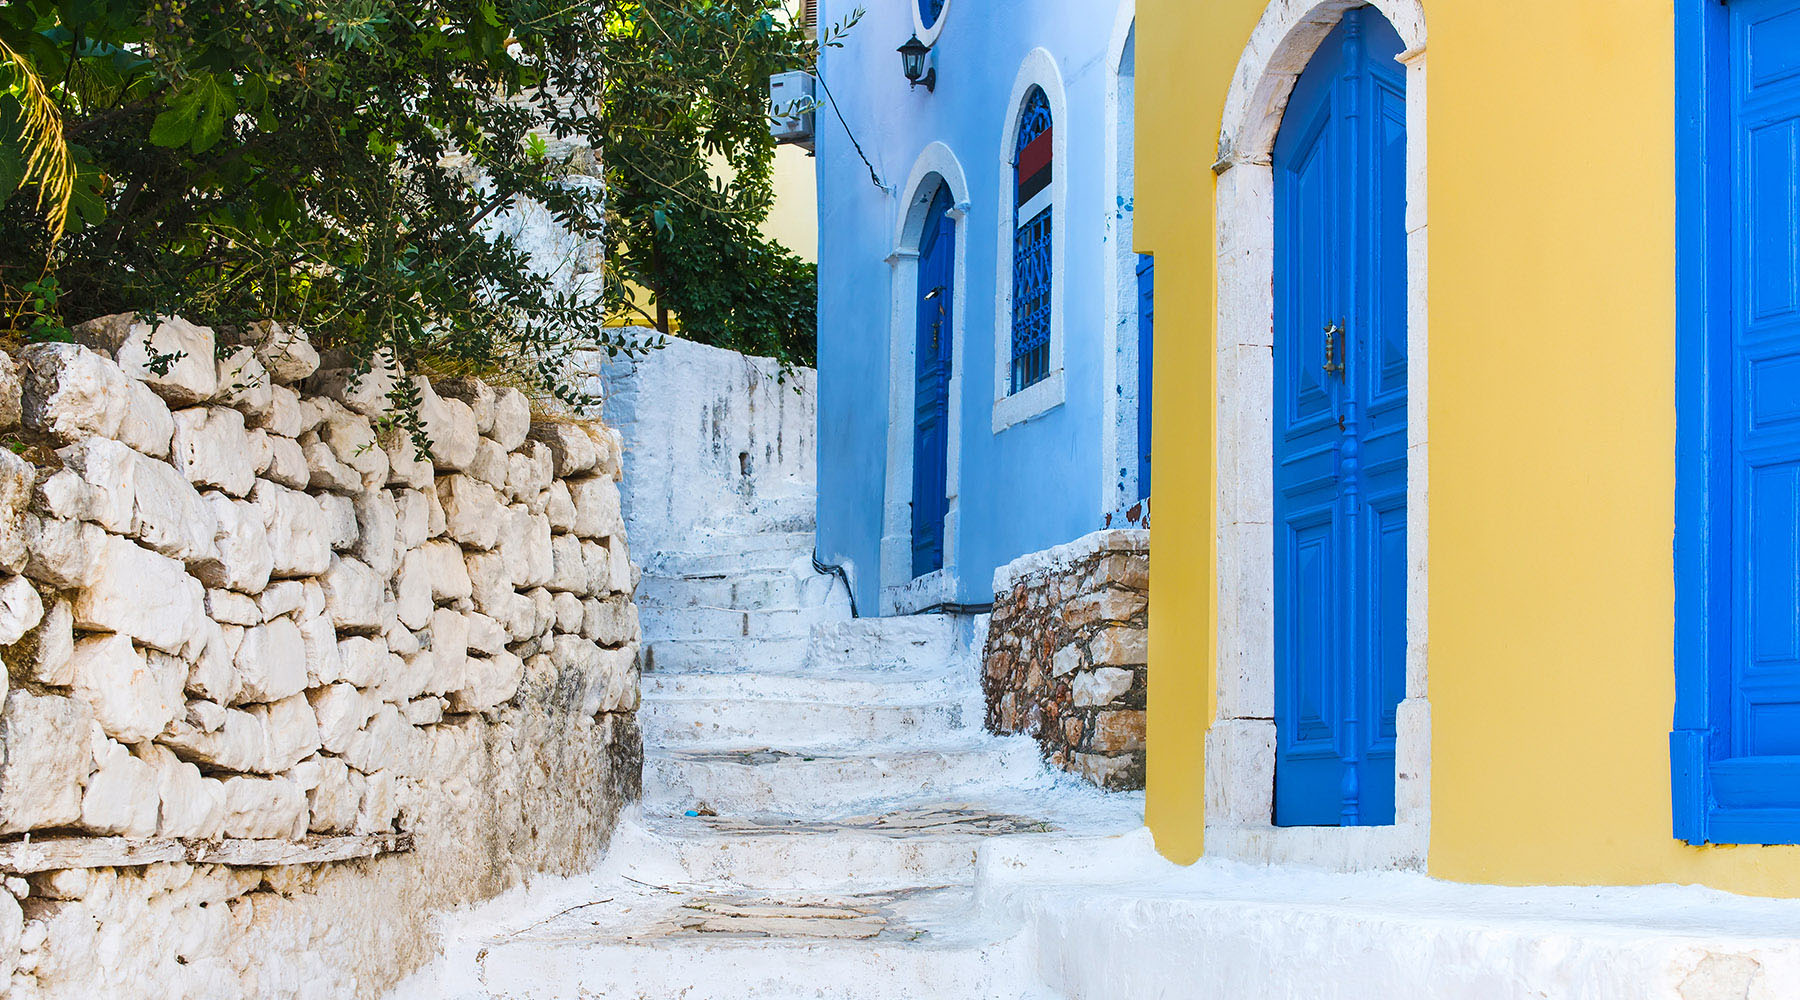 7-Night Adriatic & Greece Voyage